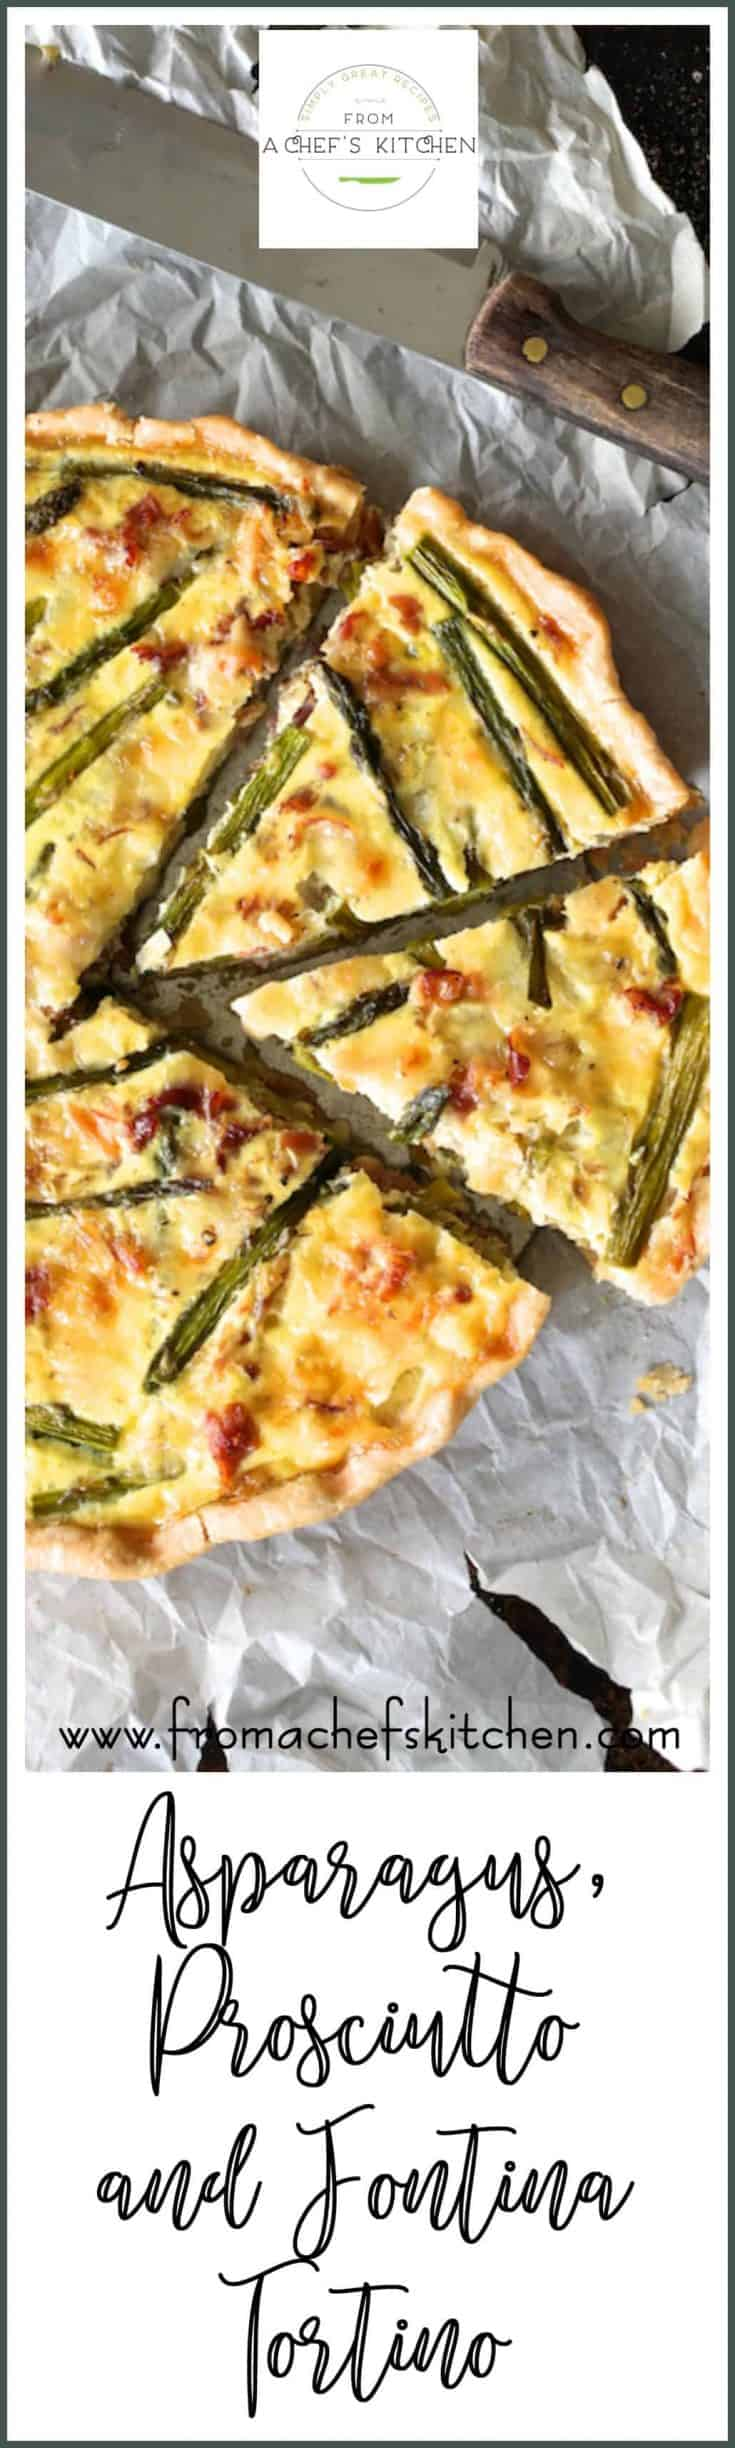 Asparagus Prosciutto and Fontina Tortino is how to turn a spring breakfast or brunch into amazing! Add a glass of Prosecco for a lovely Italian-inspired experience!  #asparagus #prosciutto #fontina #tart #quiche